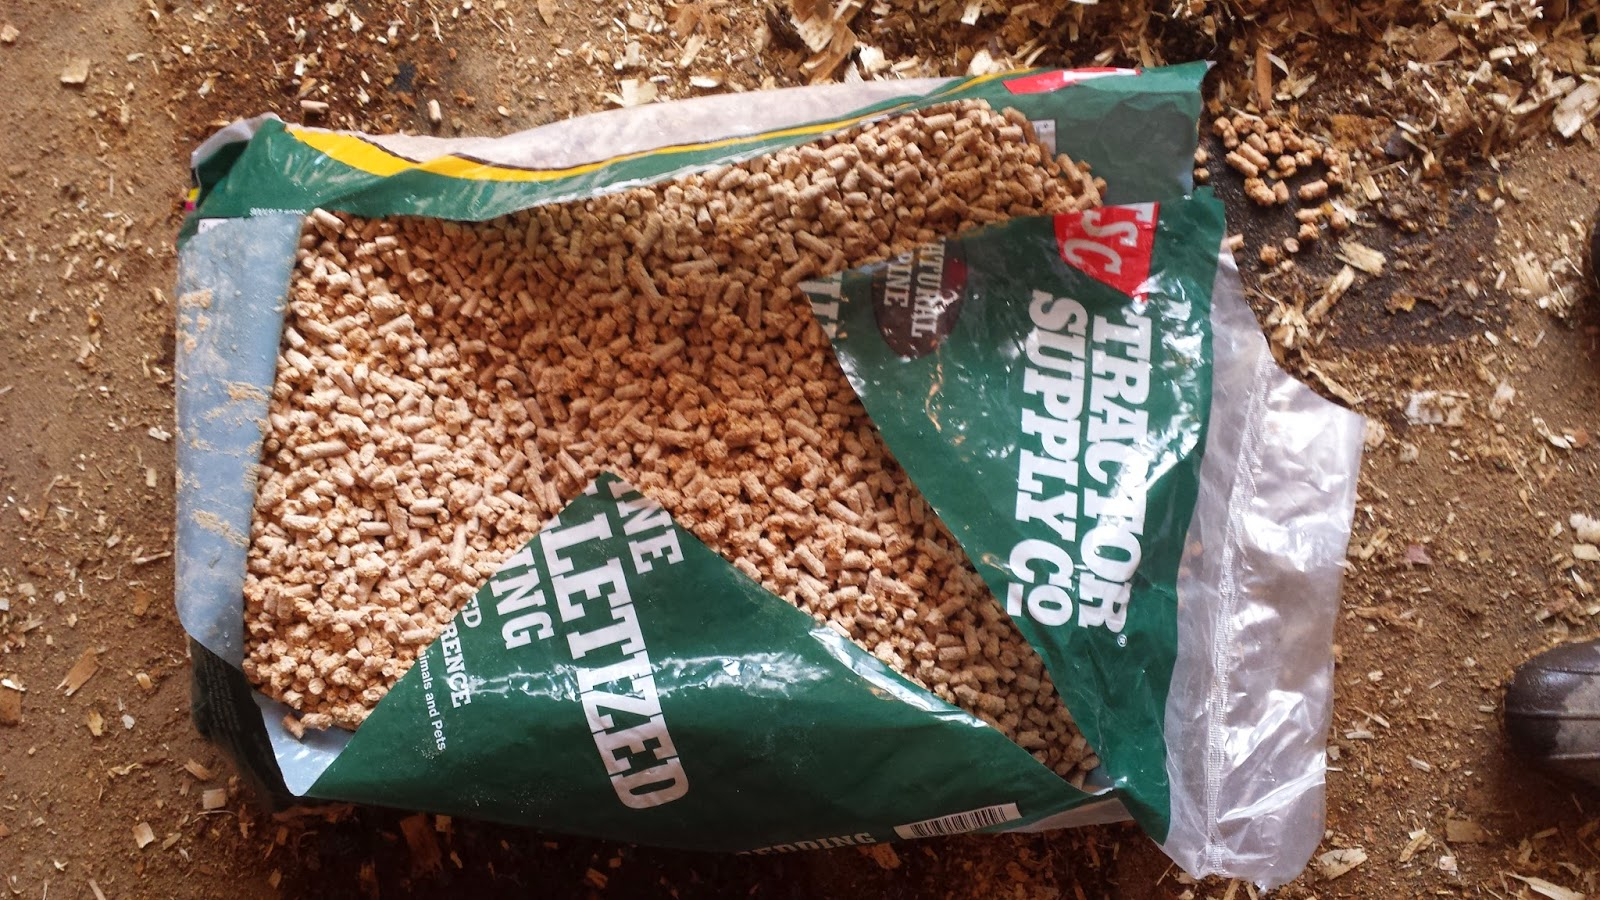 f608ff7ac On April 7 of this year I voiced some thoughts about the pros and cons of  pellet bedding. I have found that where I live (southeastern Michigan)  there s a ...